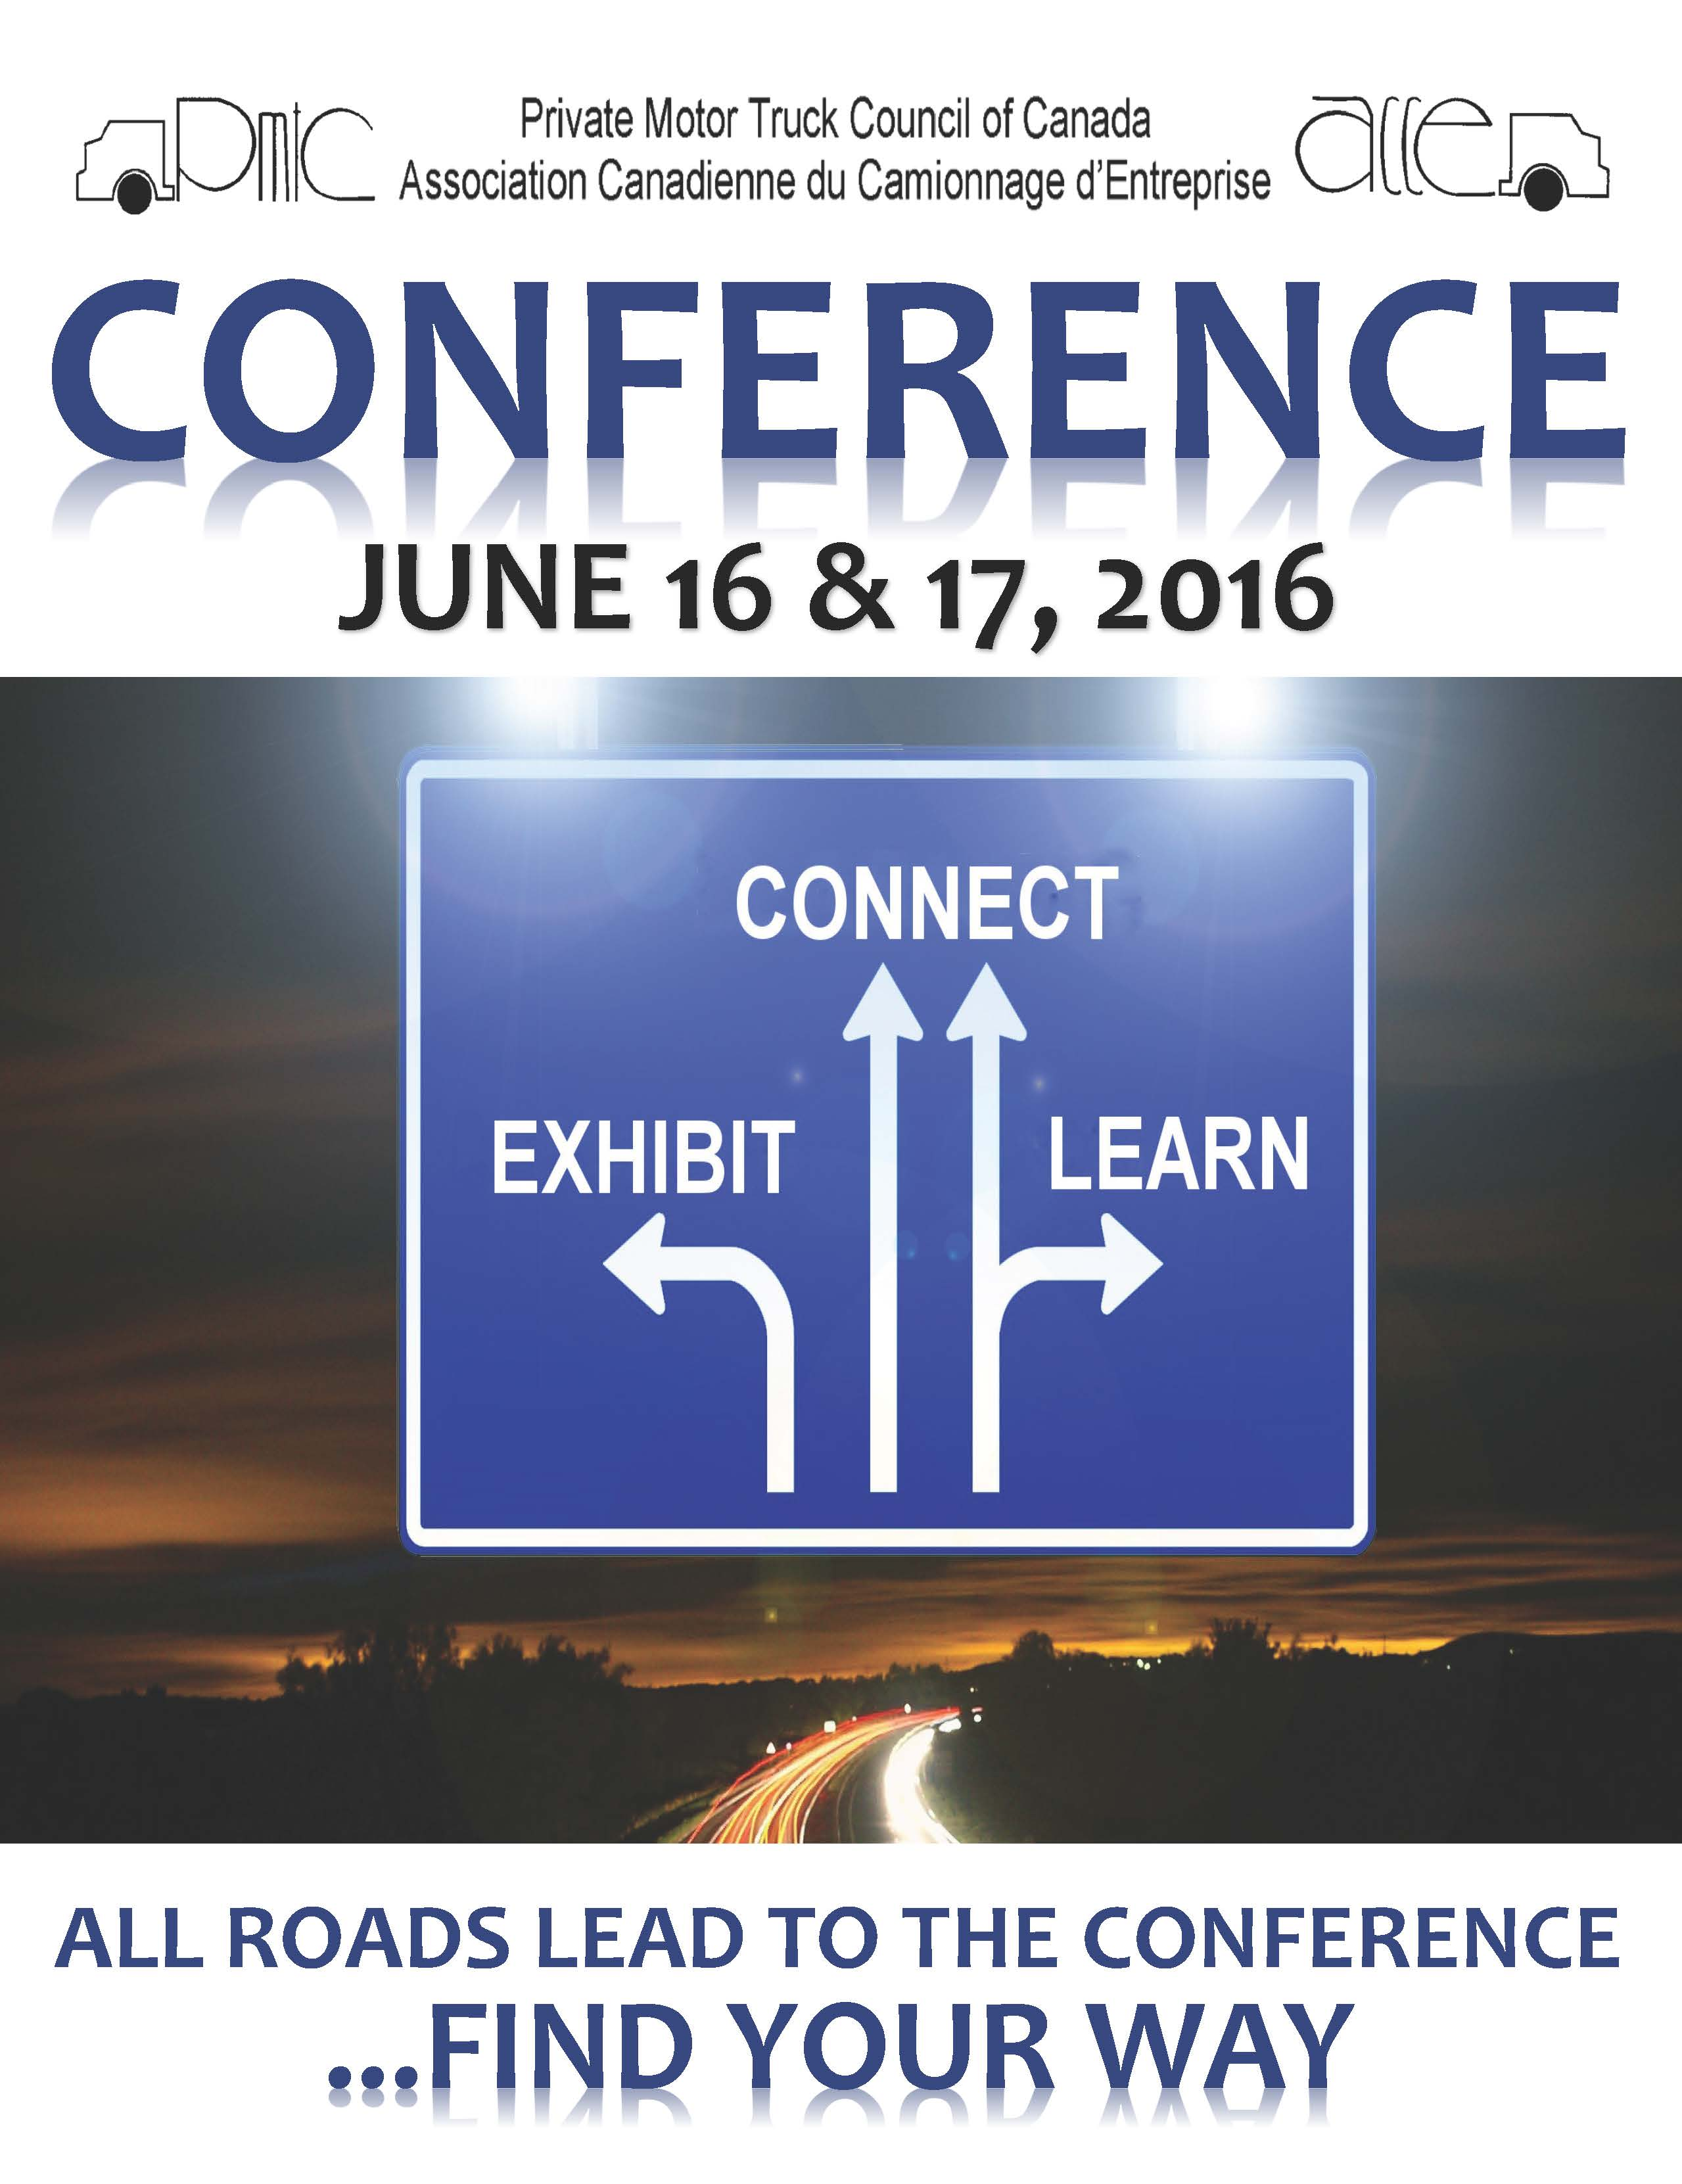 PMTC 2016 Conference Brochure_Page_1